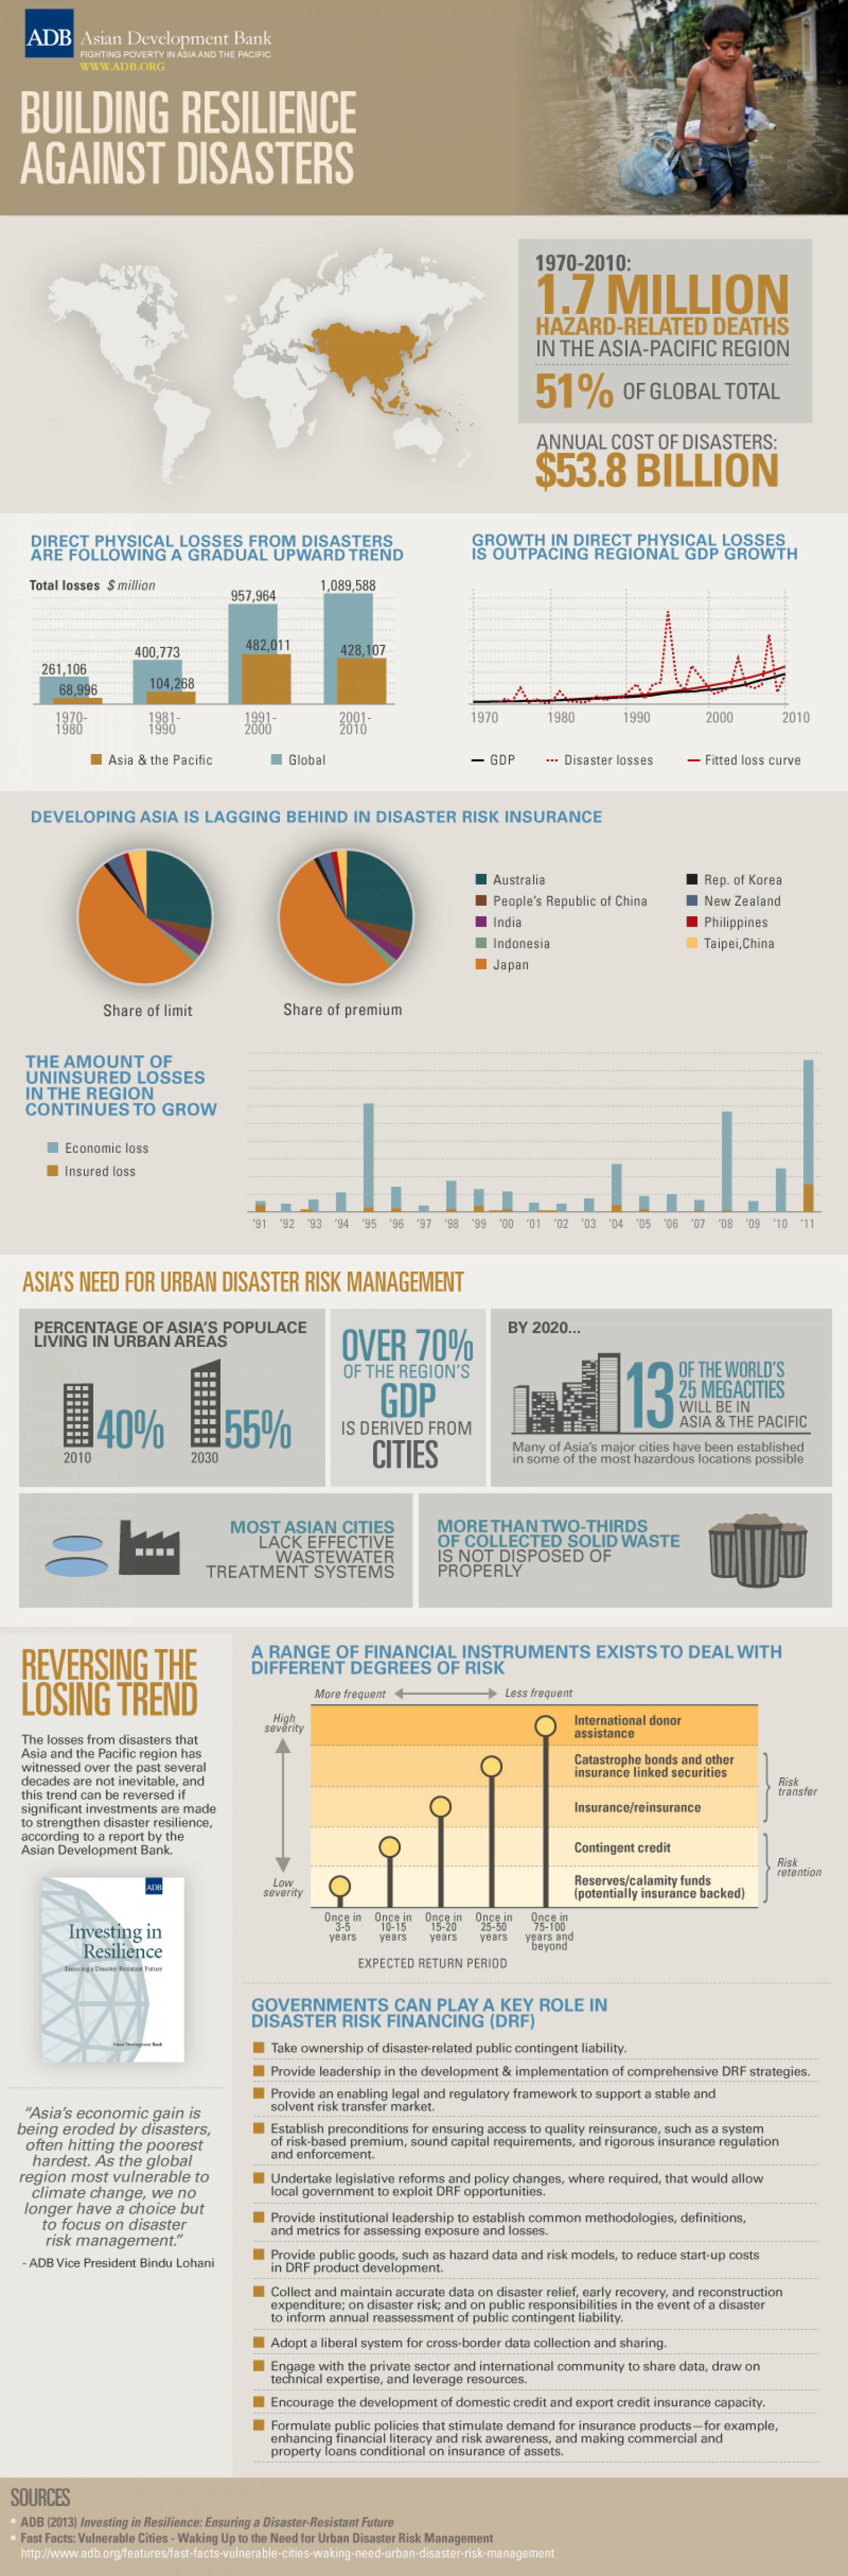 Building Resilience Against Disasters Infographic